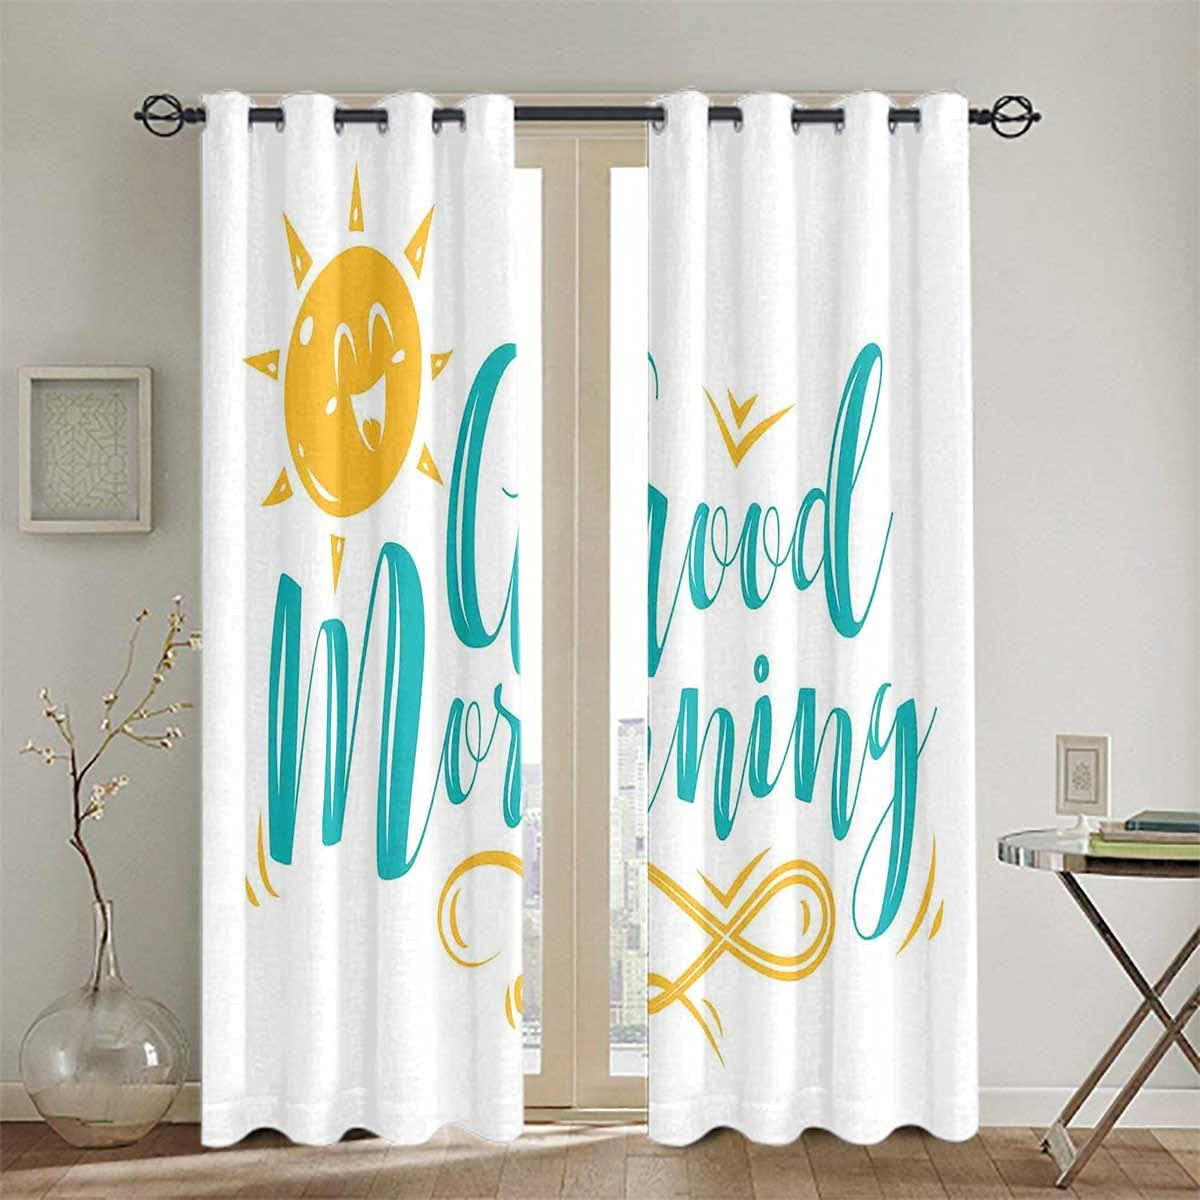 Blackout Curtains Sliding Max 71% OFF Thermal All stores are sold Sun and Smiling Wavy